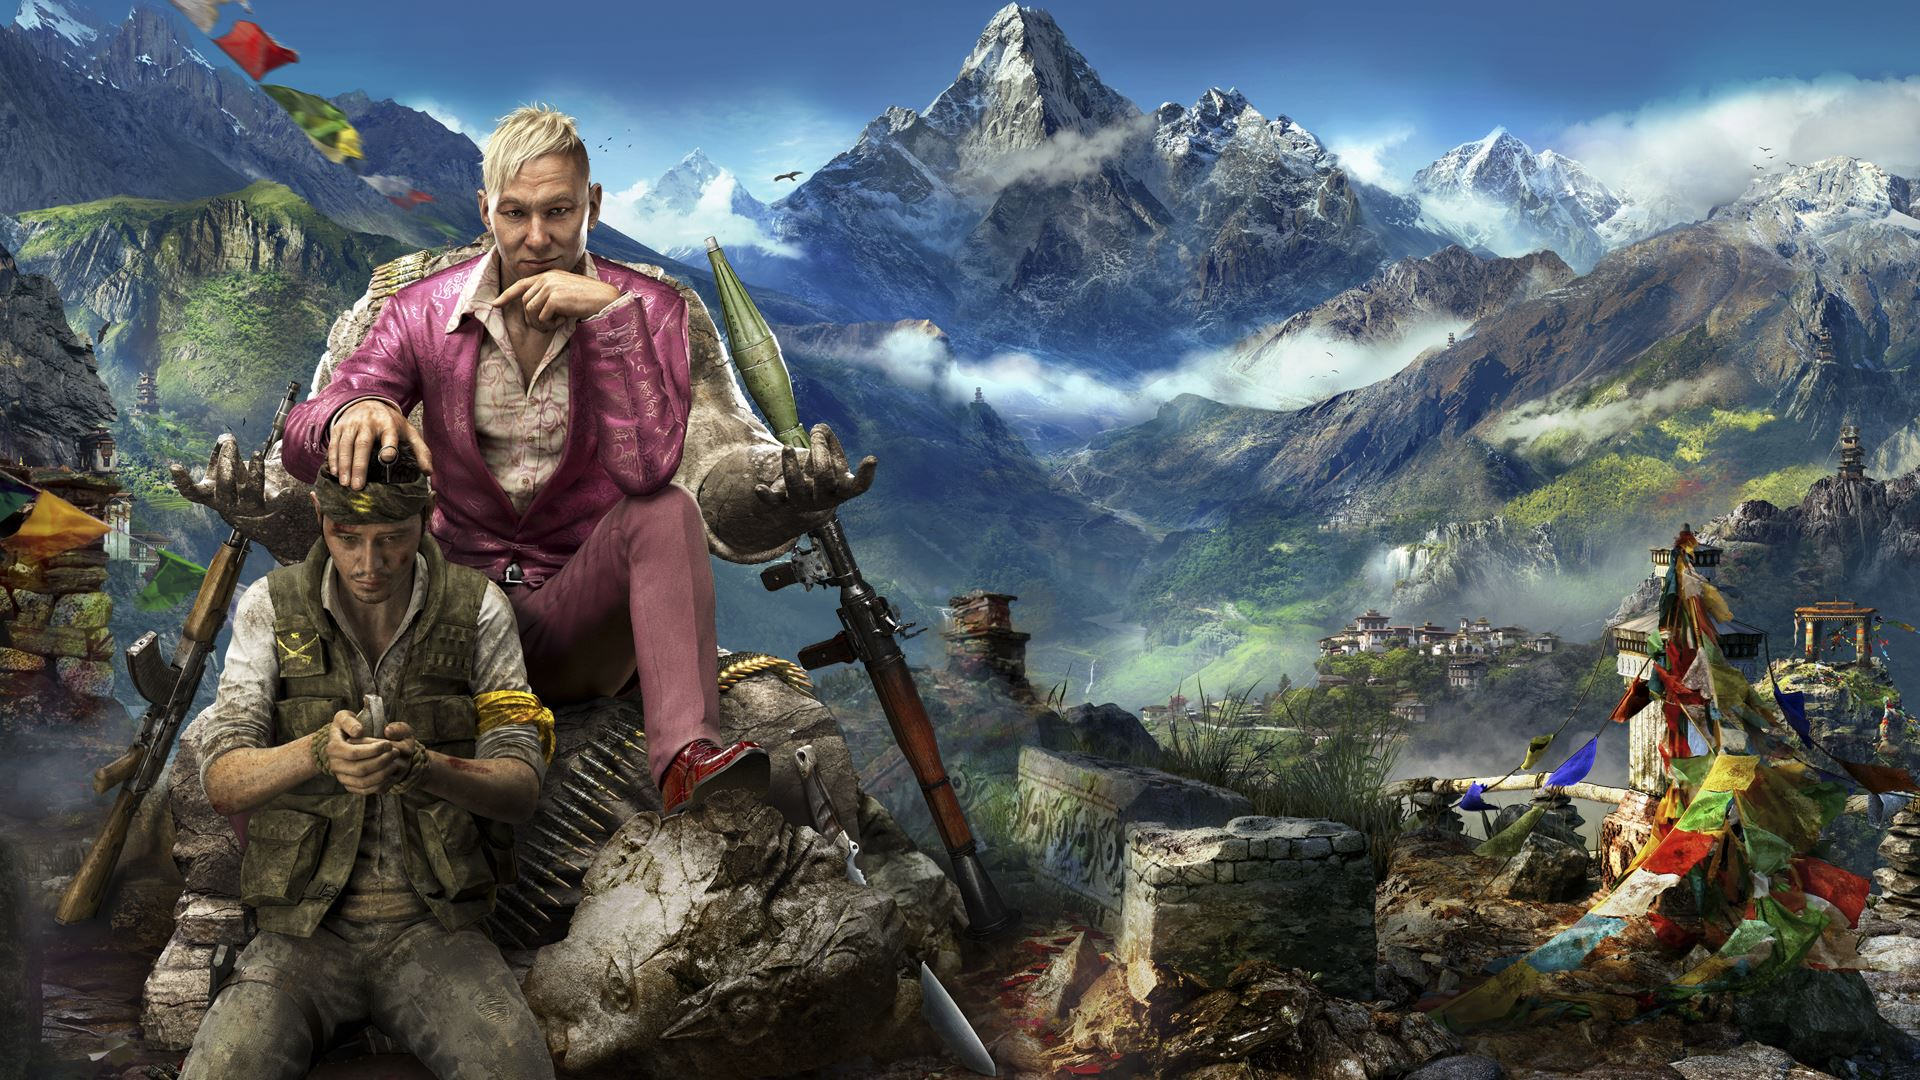 Far Cry 4 And A Cultural Journey To South Asia 1 The Angry